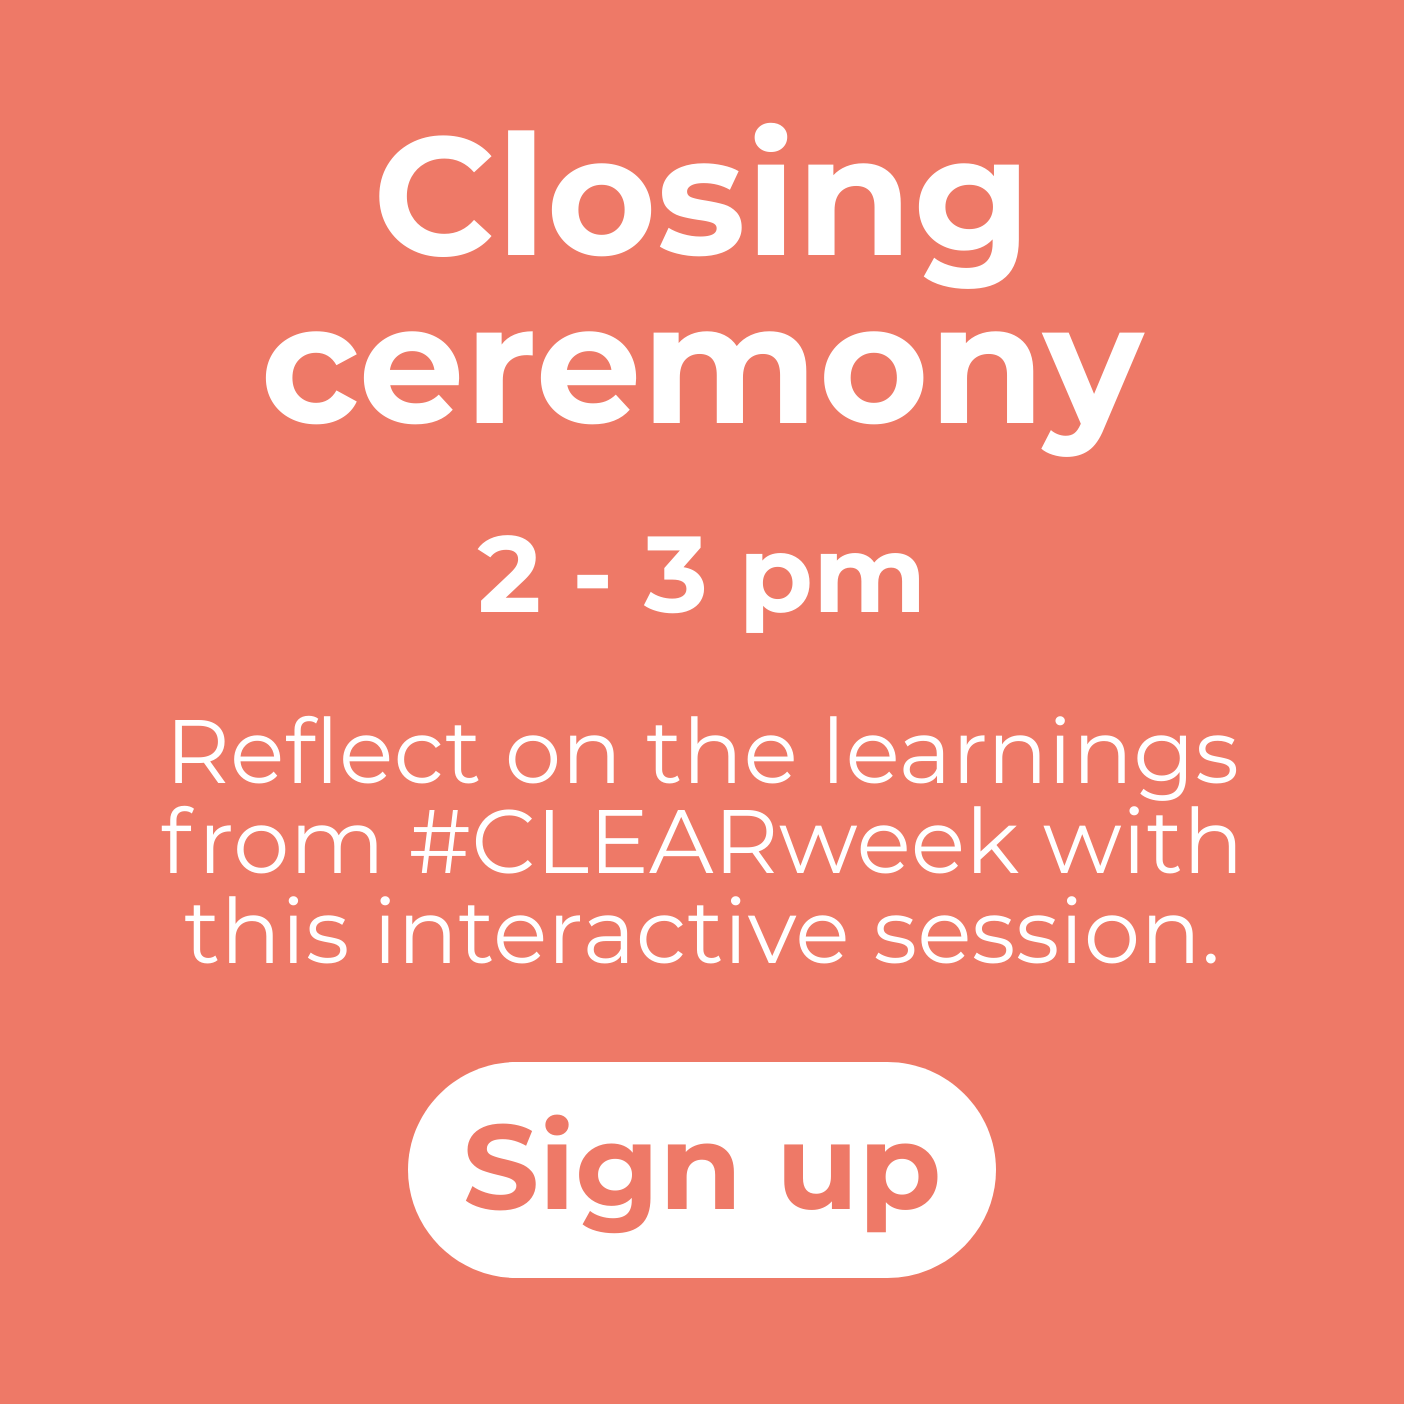 CLEAR closing ceremony